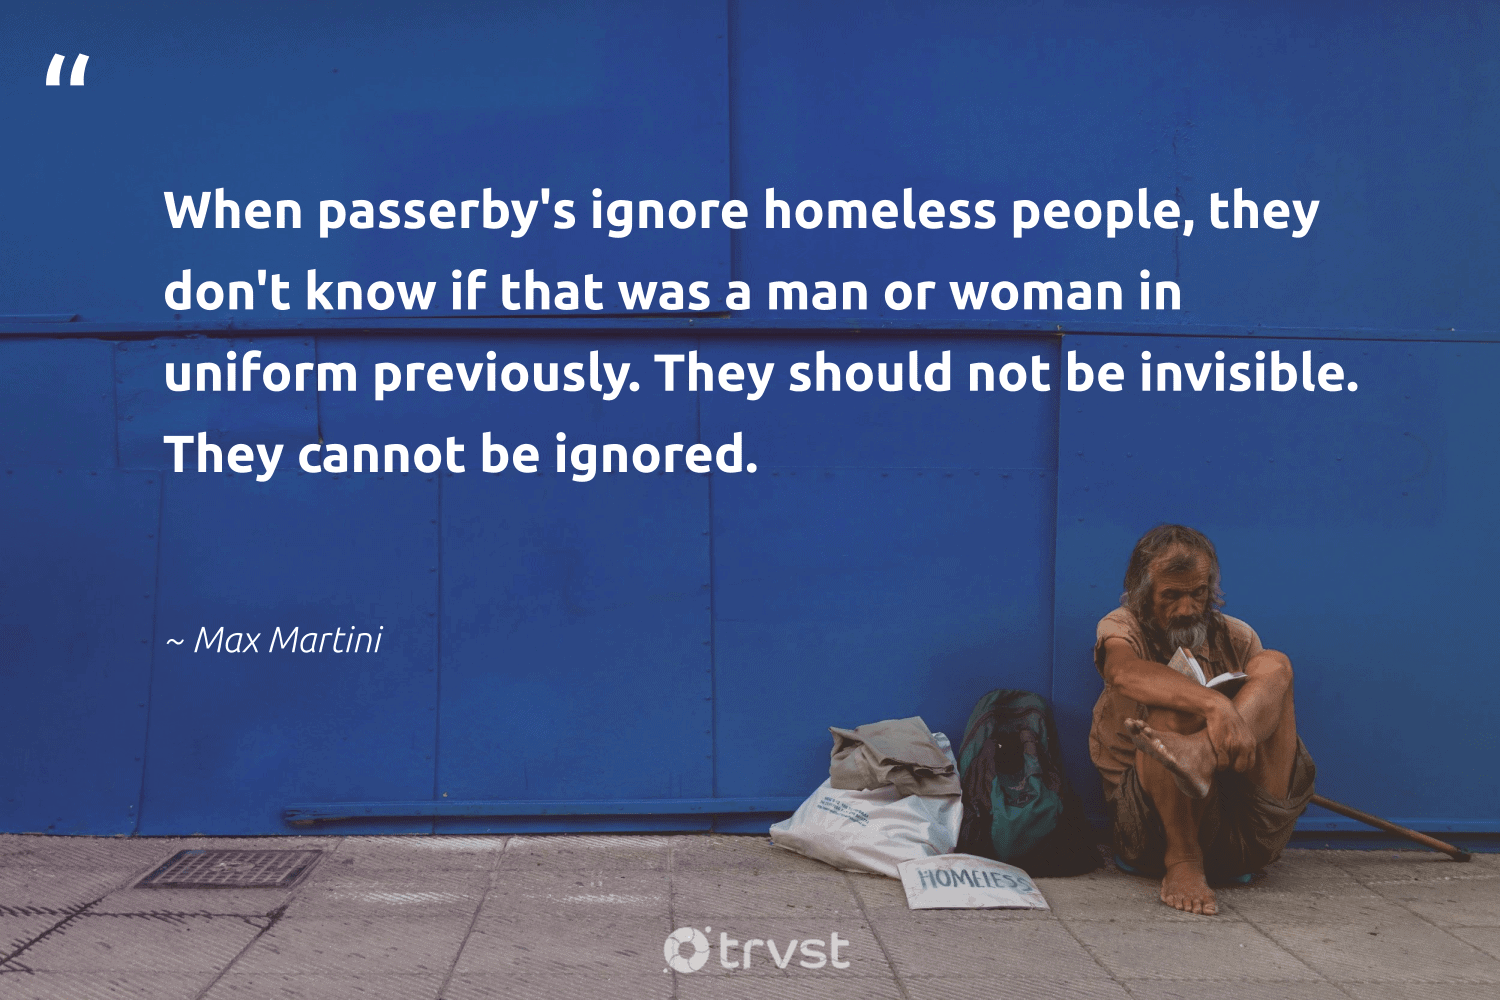 """""""When passerby's ignore homeless people, they don't know if that was a man or woman in uniform previously. They should not be invisible. They cannot be ignored.""""  - Max Martini #trvst #quotes #homelessness #homeless #equalrights #sustainablefutures #dosomething #equalopportunity #weareallone #beinspired #inclusion #makeadifference"""